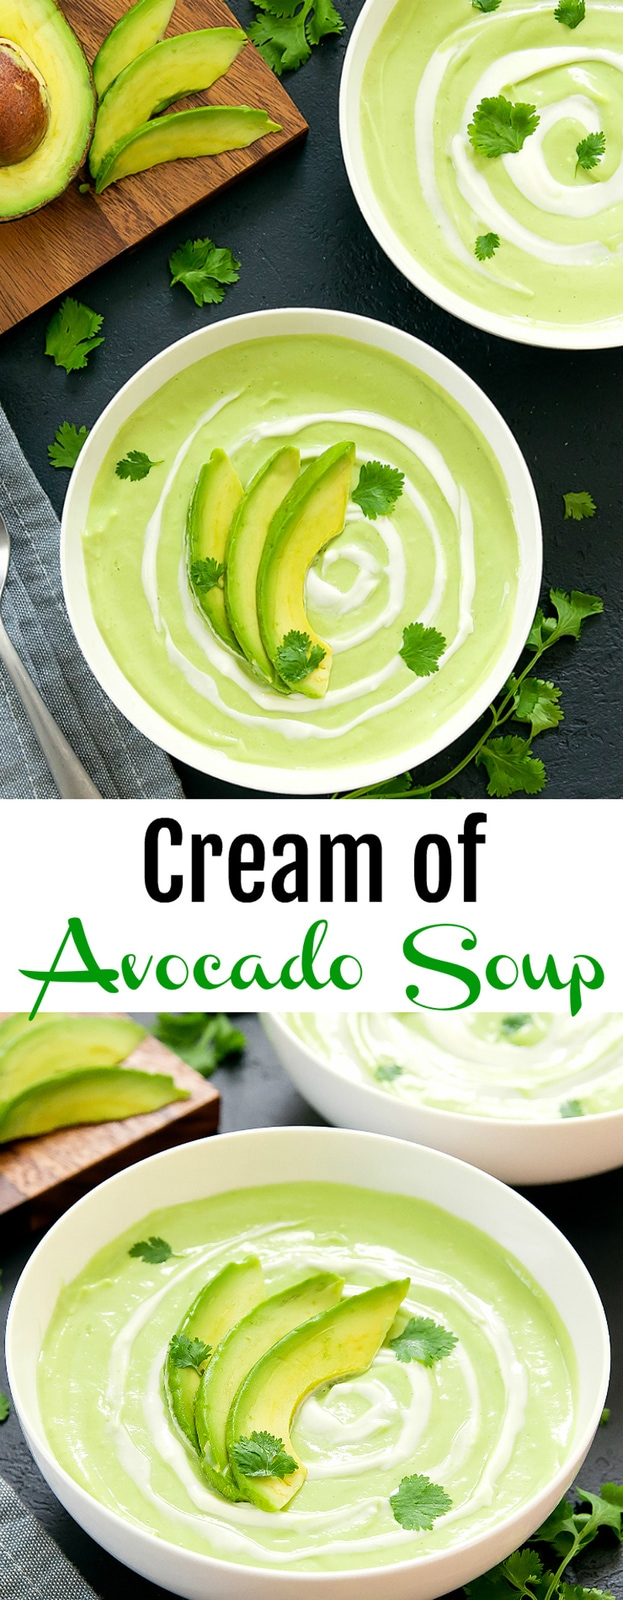 Cream of Avocado Soup. A creamy, savory summer soup that is ready in less than 30 minutes!